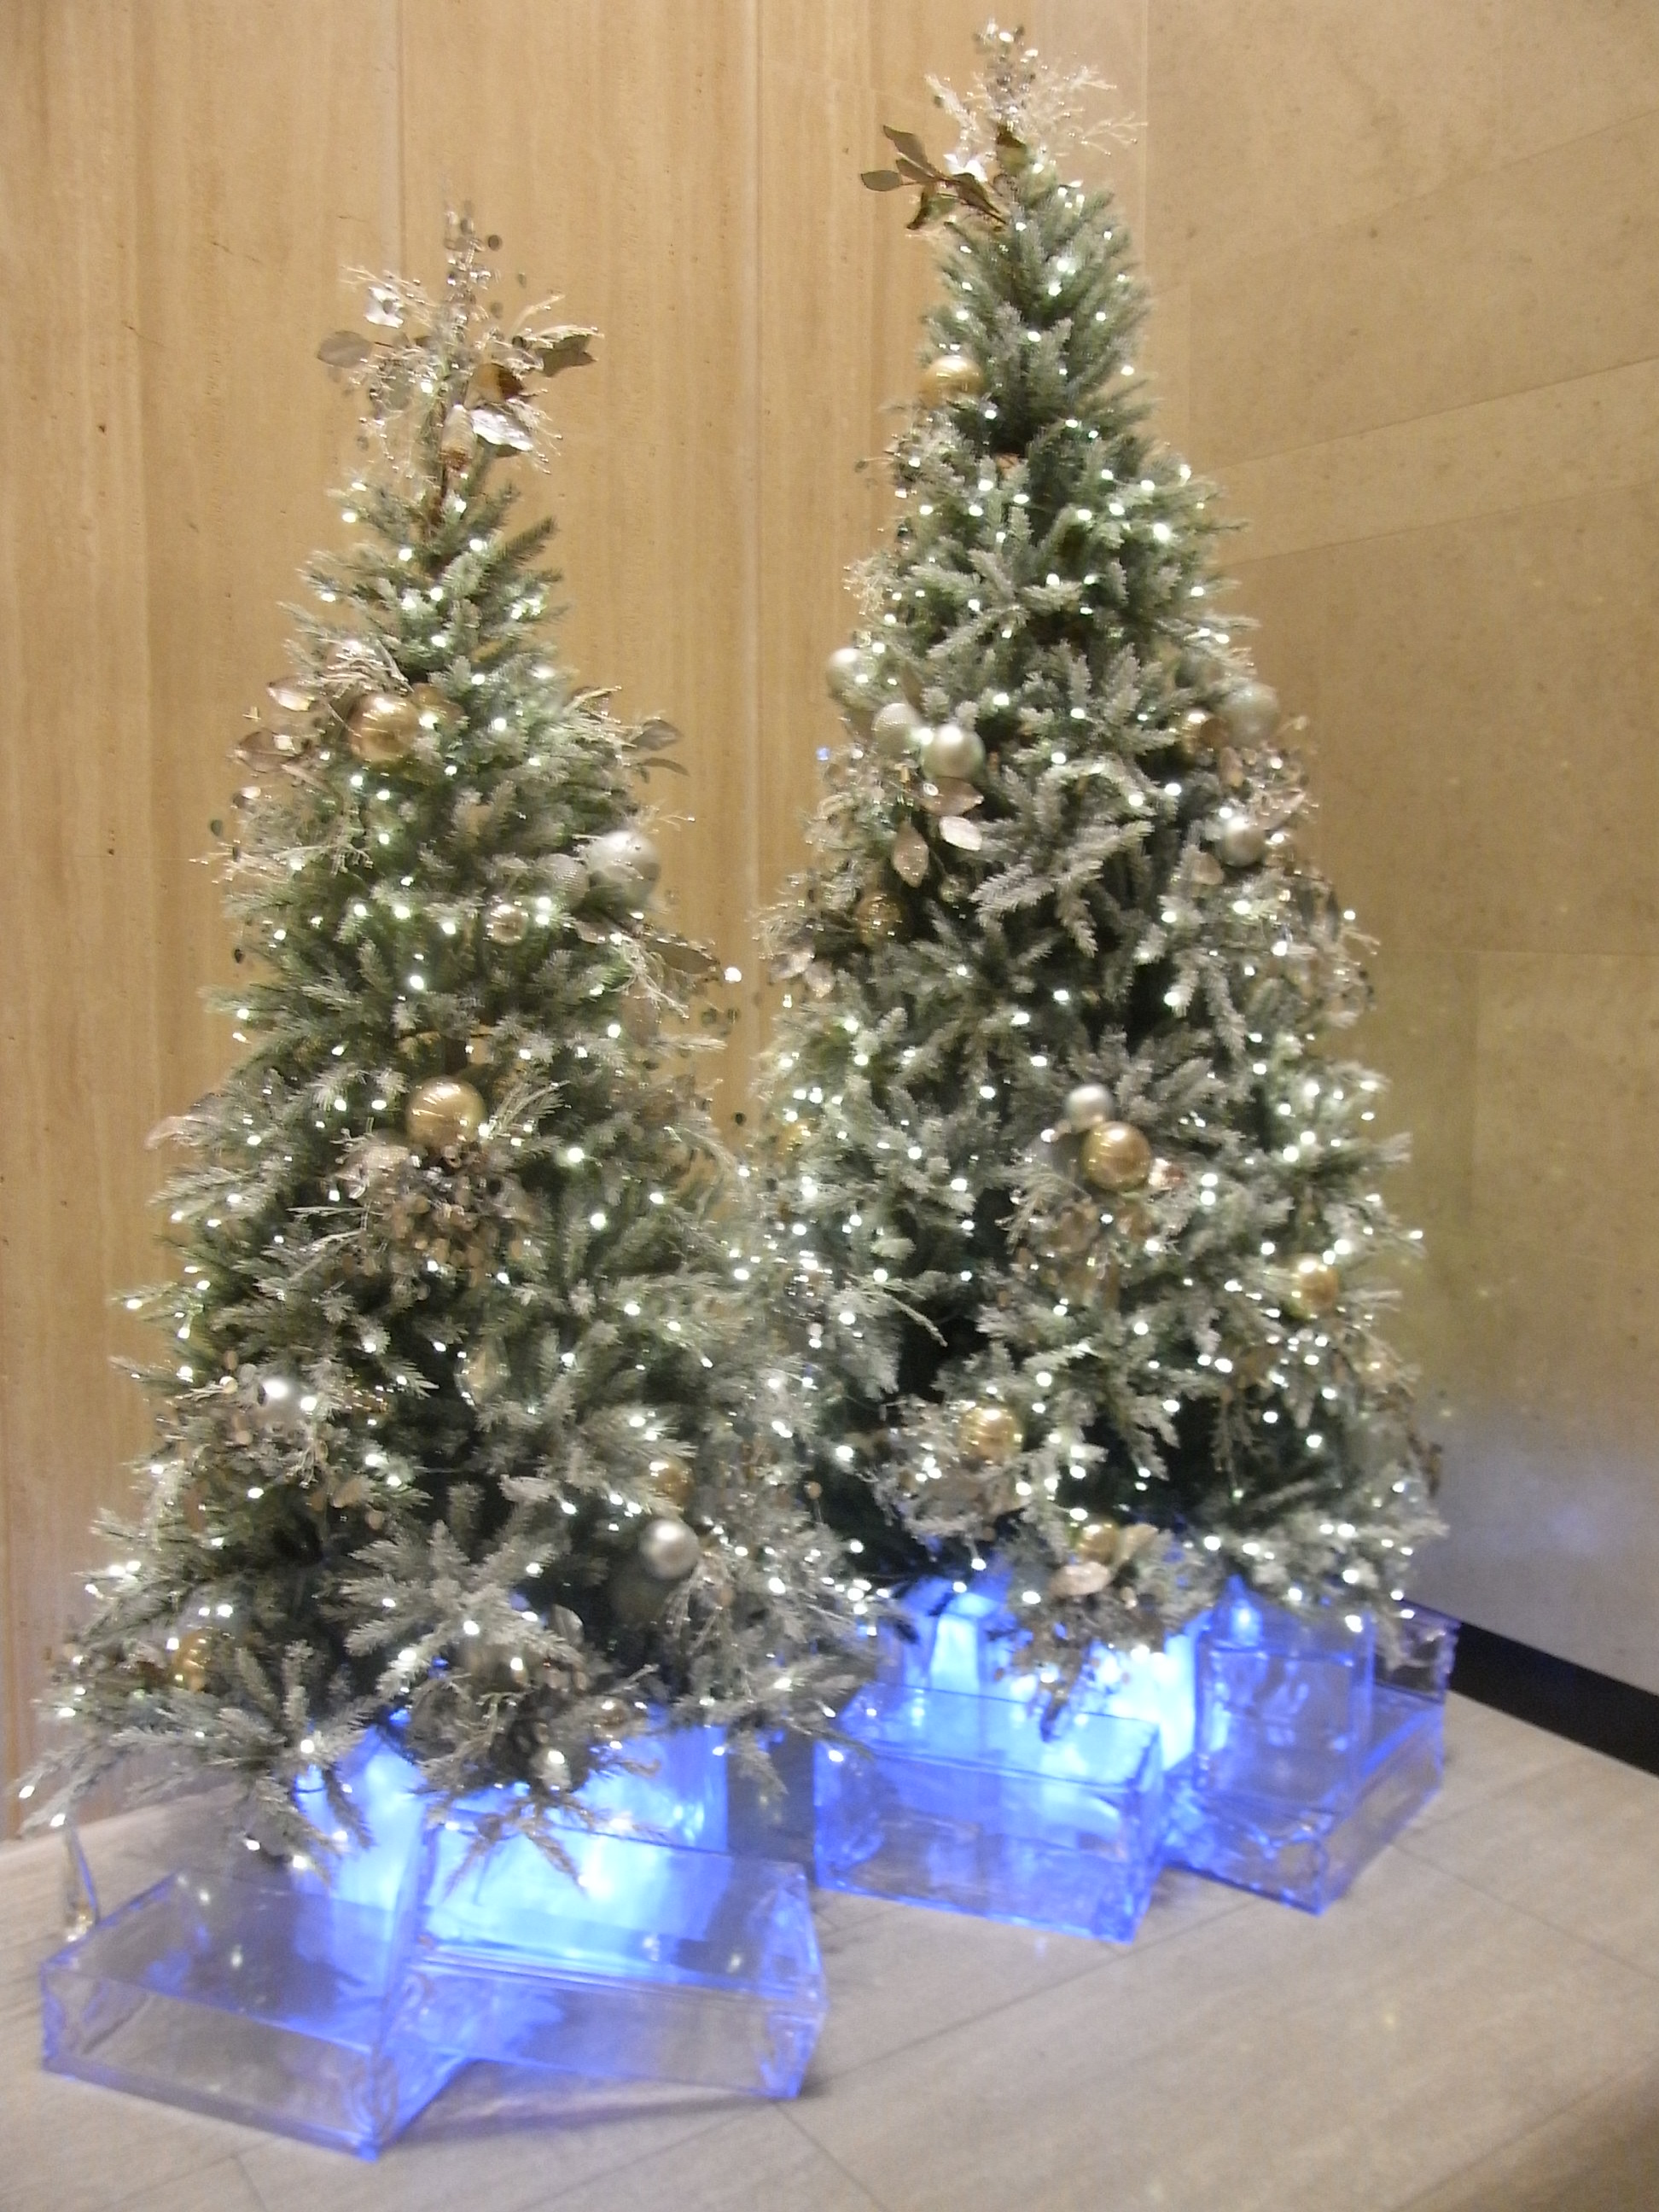 File:HK Central Alexrandra House evening two Christmas trees Dec ...